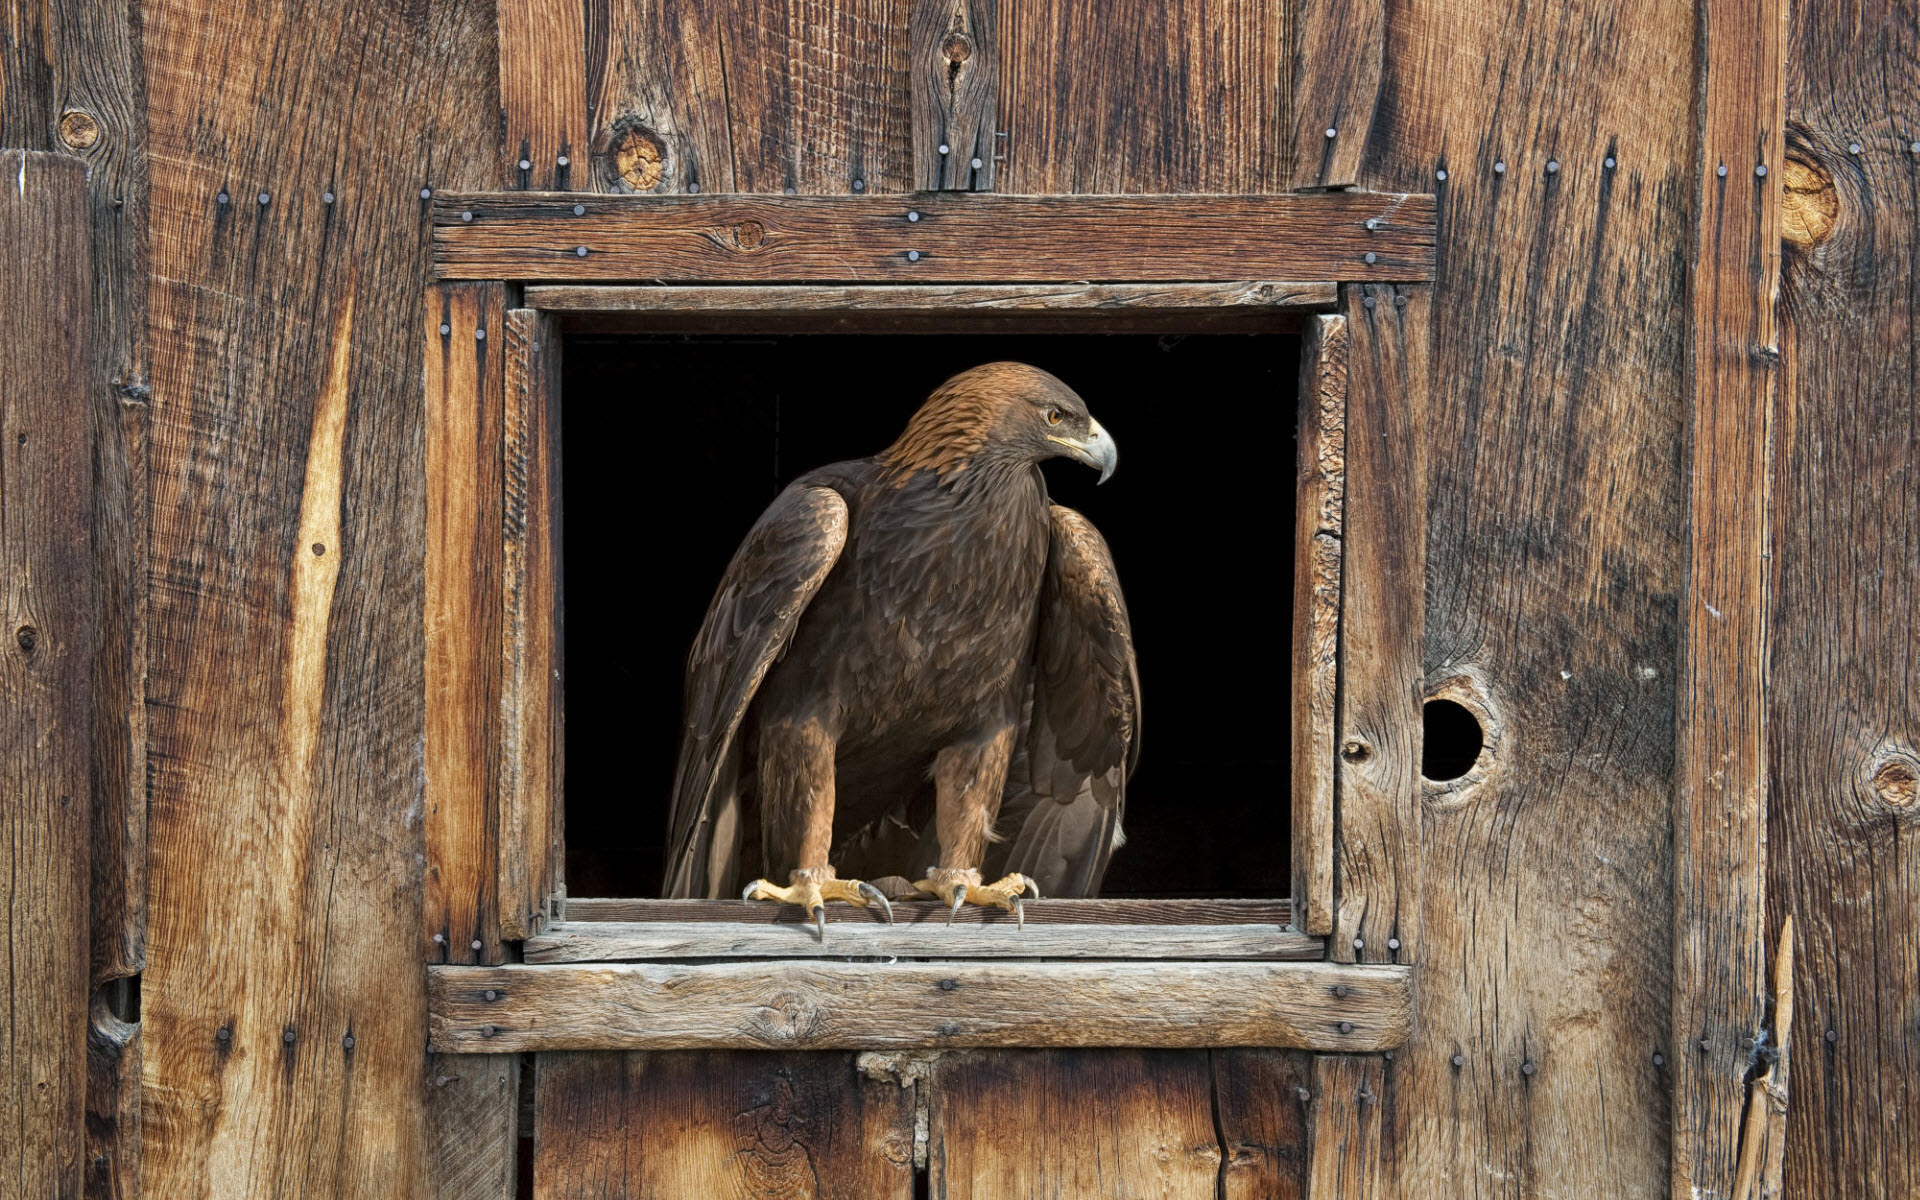 click to free download the wallpaper--Images of Animals - Barn Eagle Post in Pixel of 1920x1200, the Eagle Left Alone, It is Cool and Stony 1920X1200 free wallpaper download